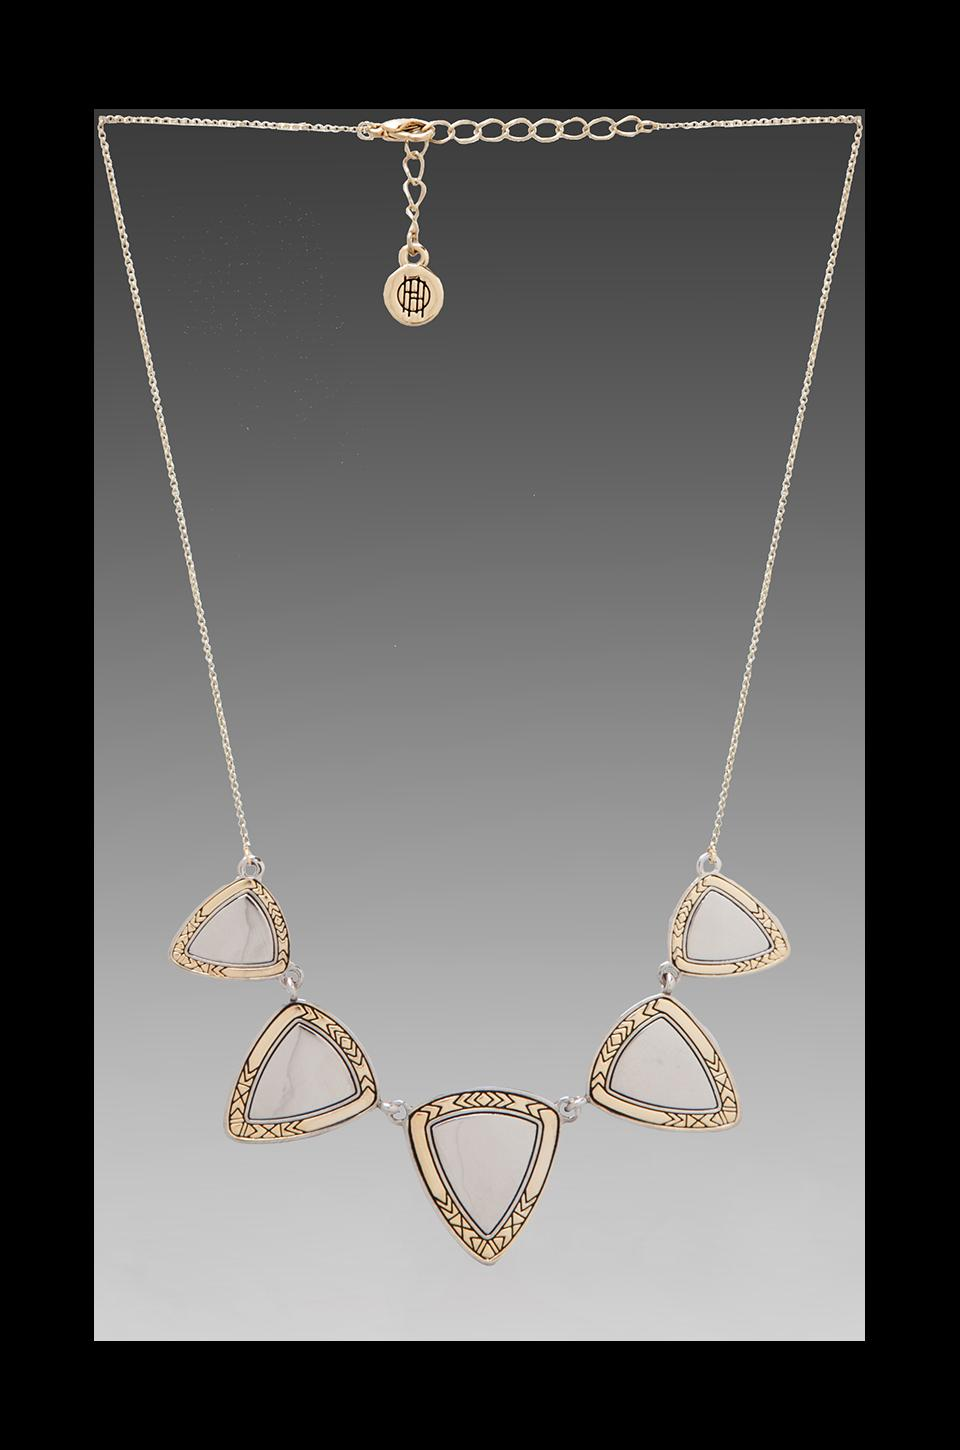 House of Harlow 1960 House of Harlow Metallic Flatpick Necklace in Gold